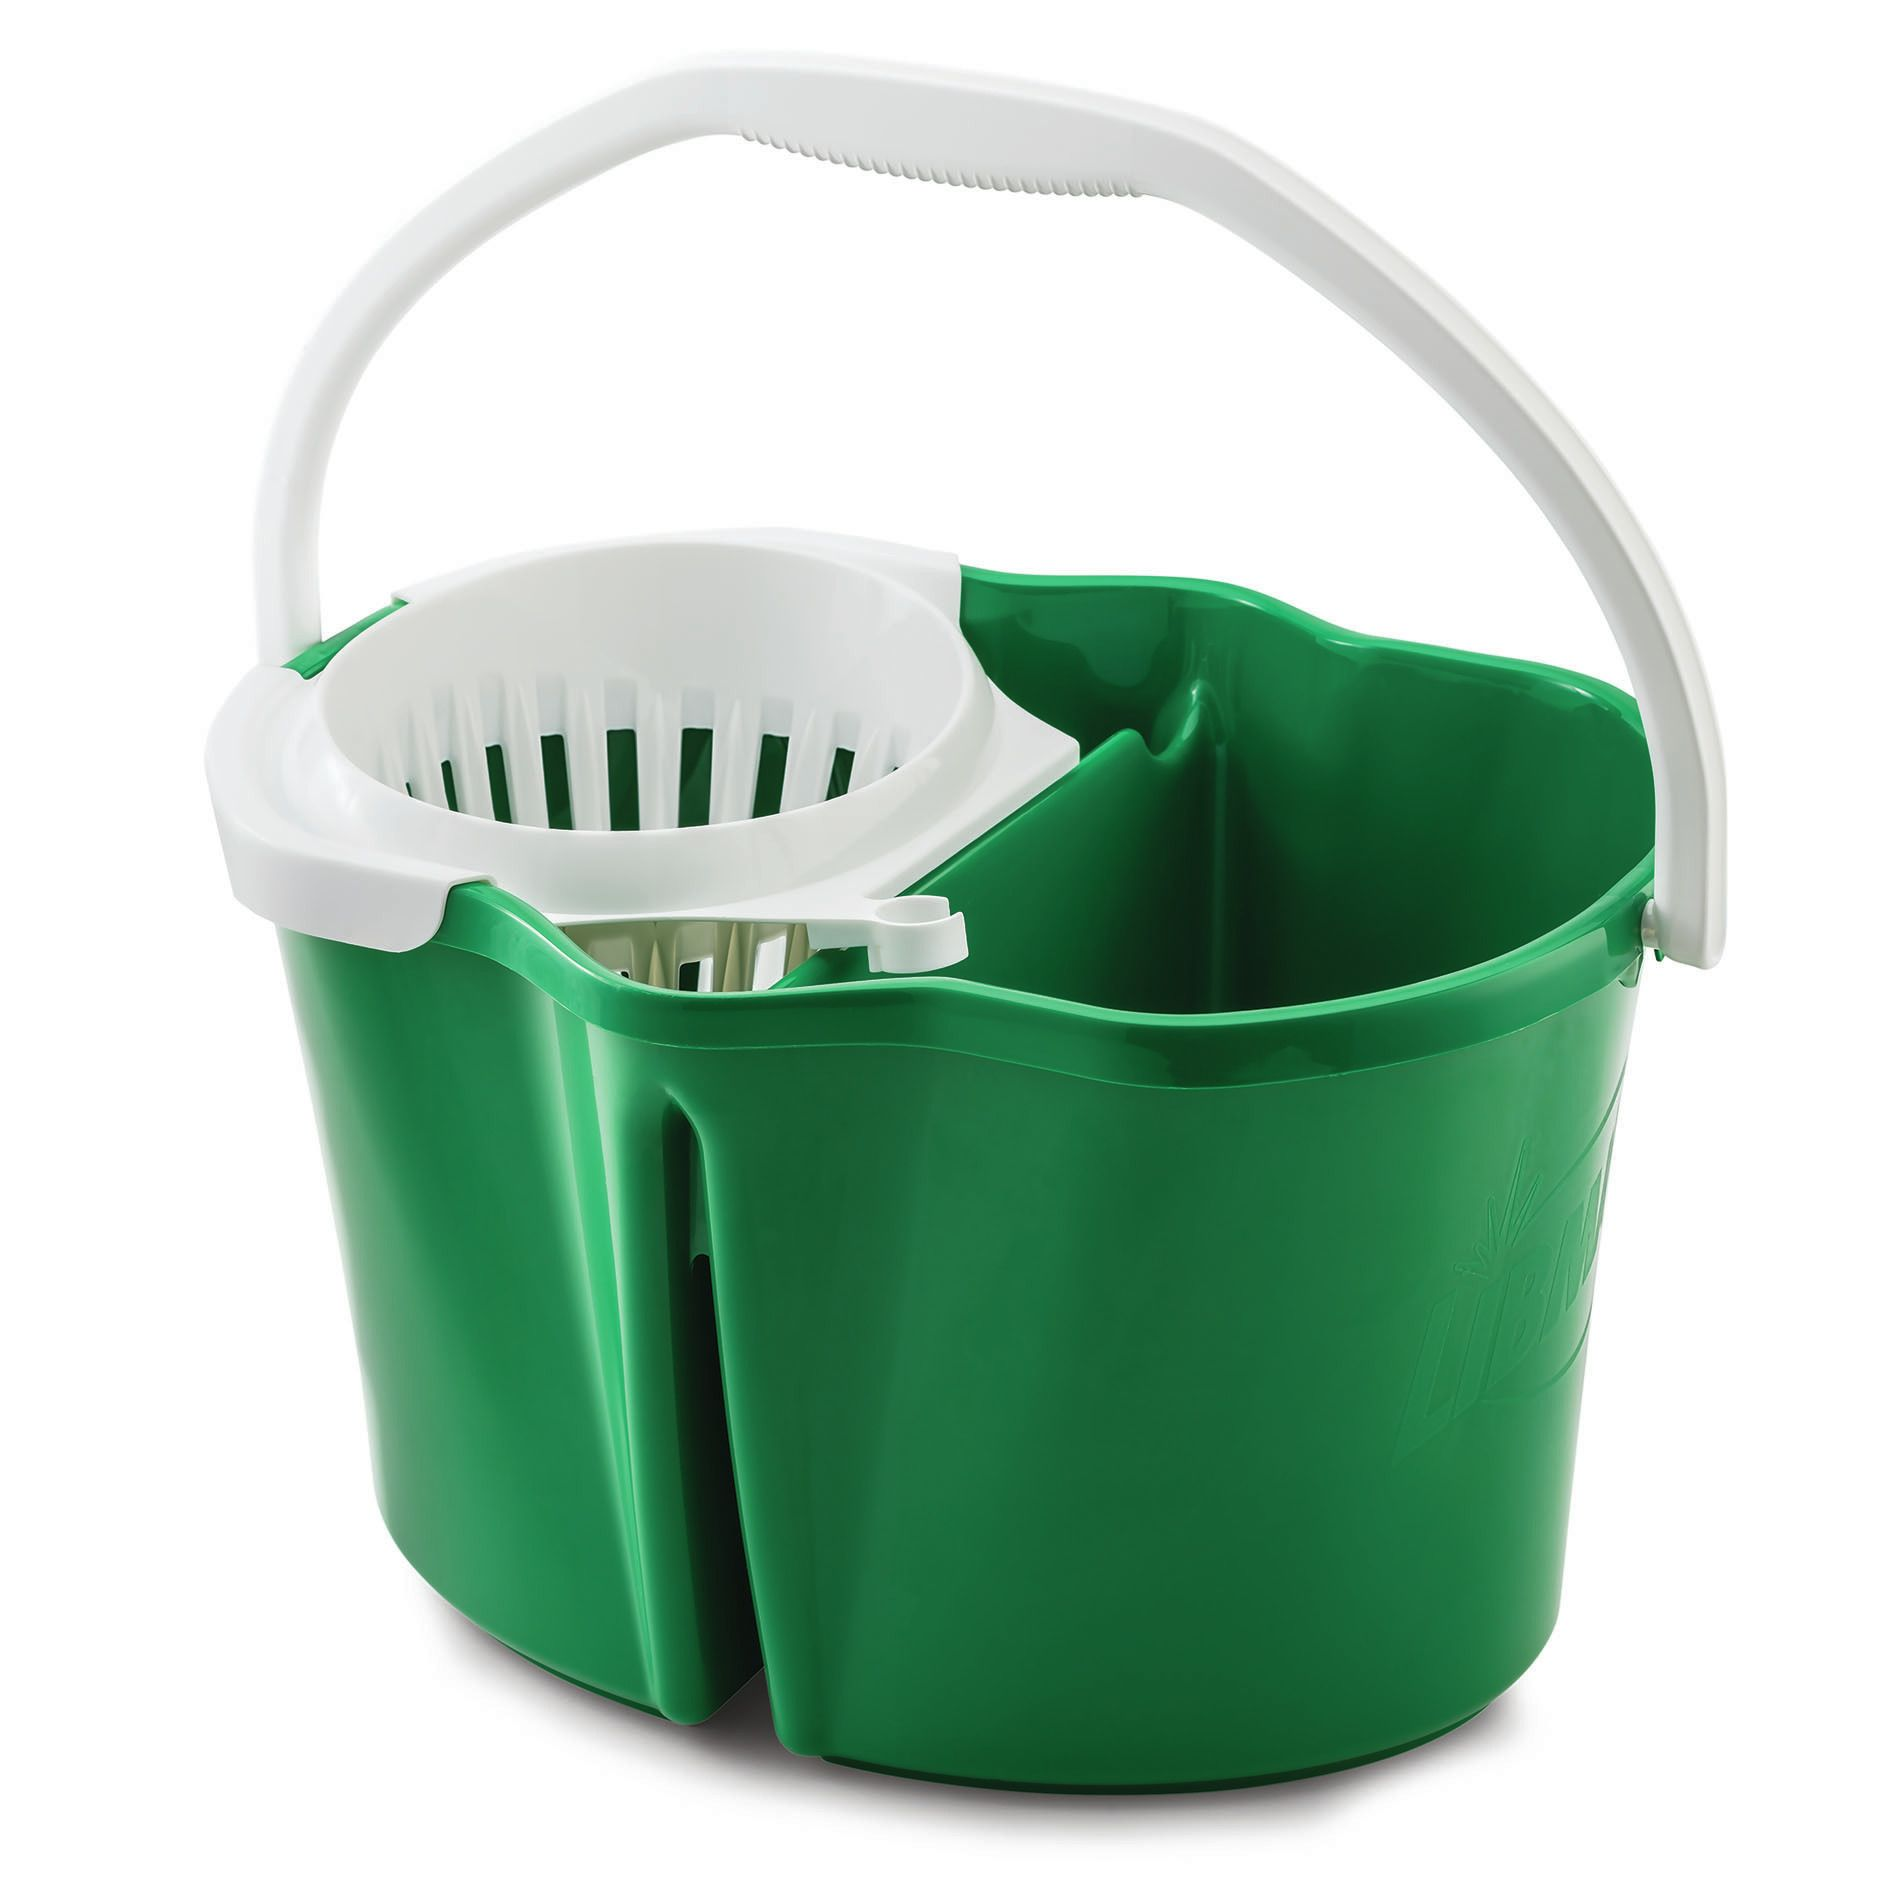 Libman Double Mop Bucket With Wringer Libman Wringer Mops